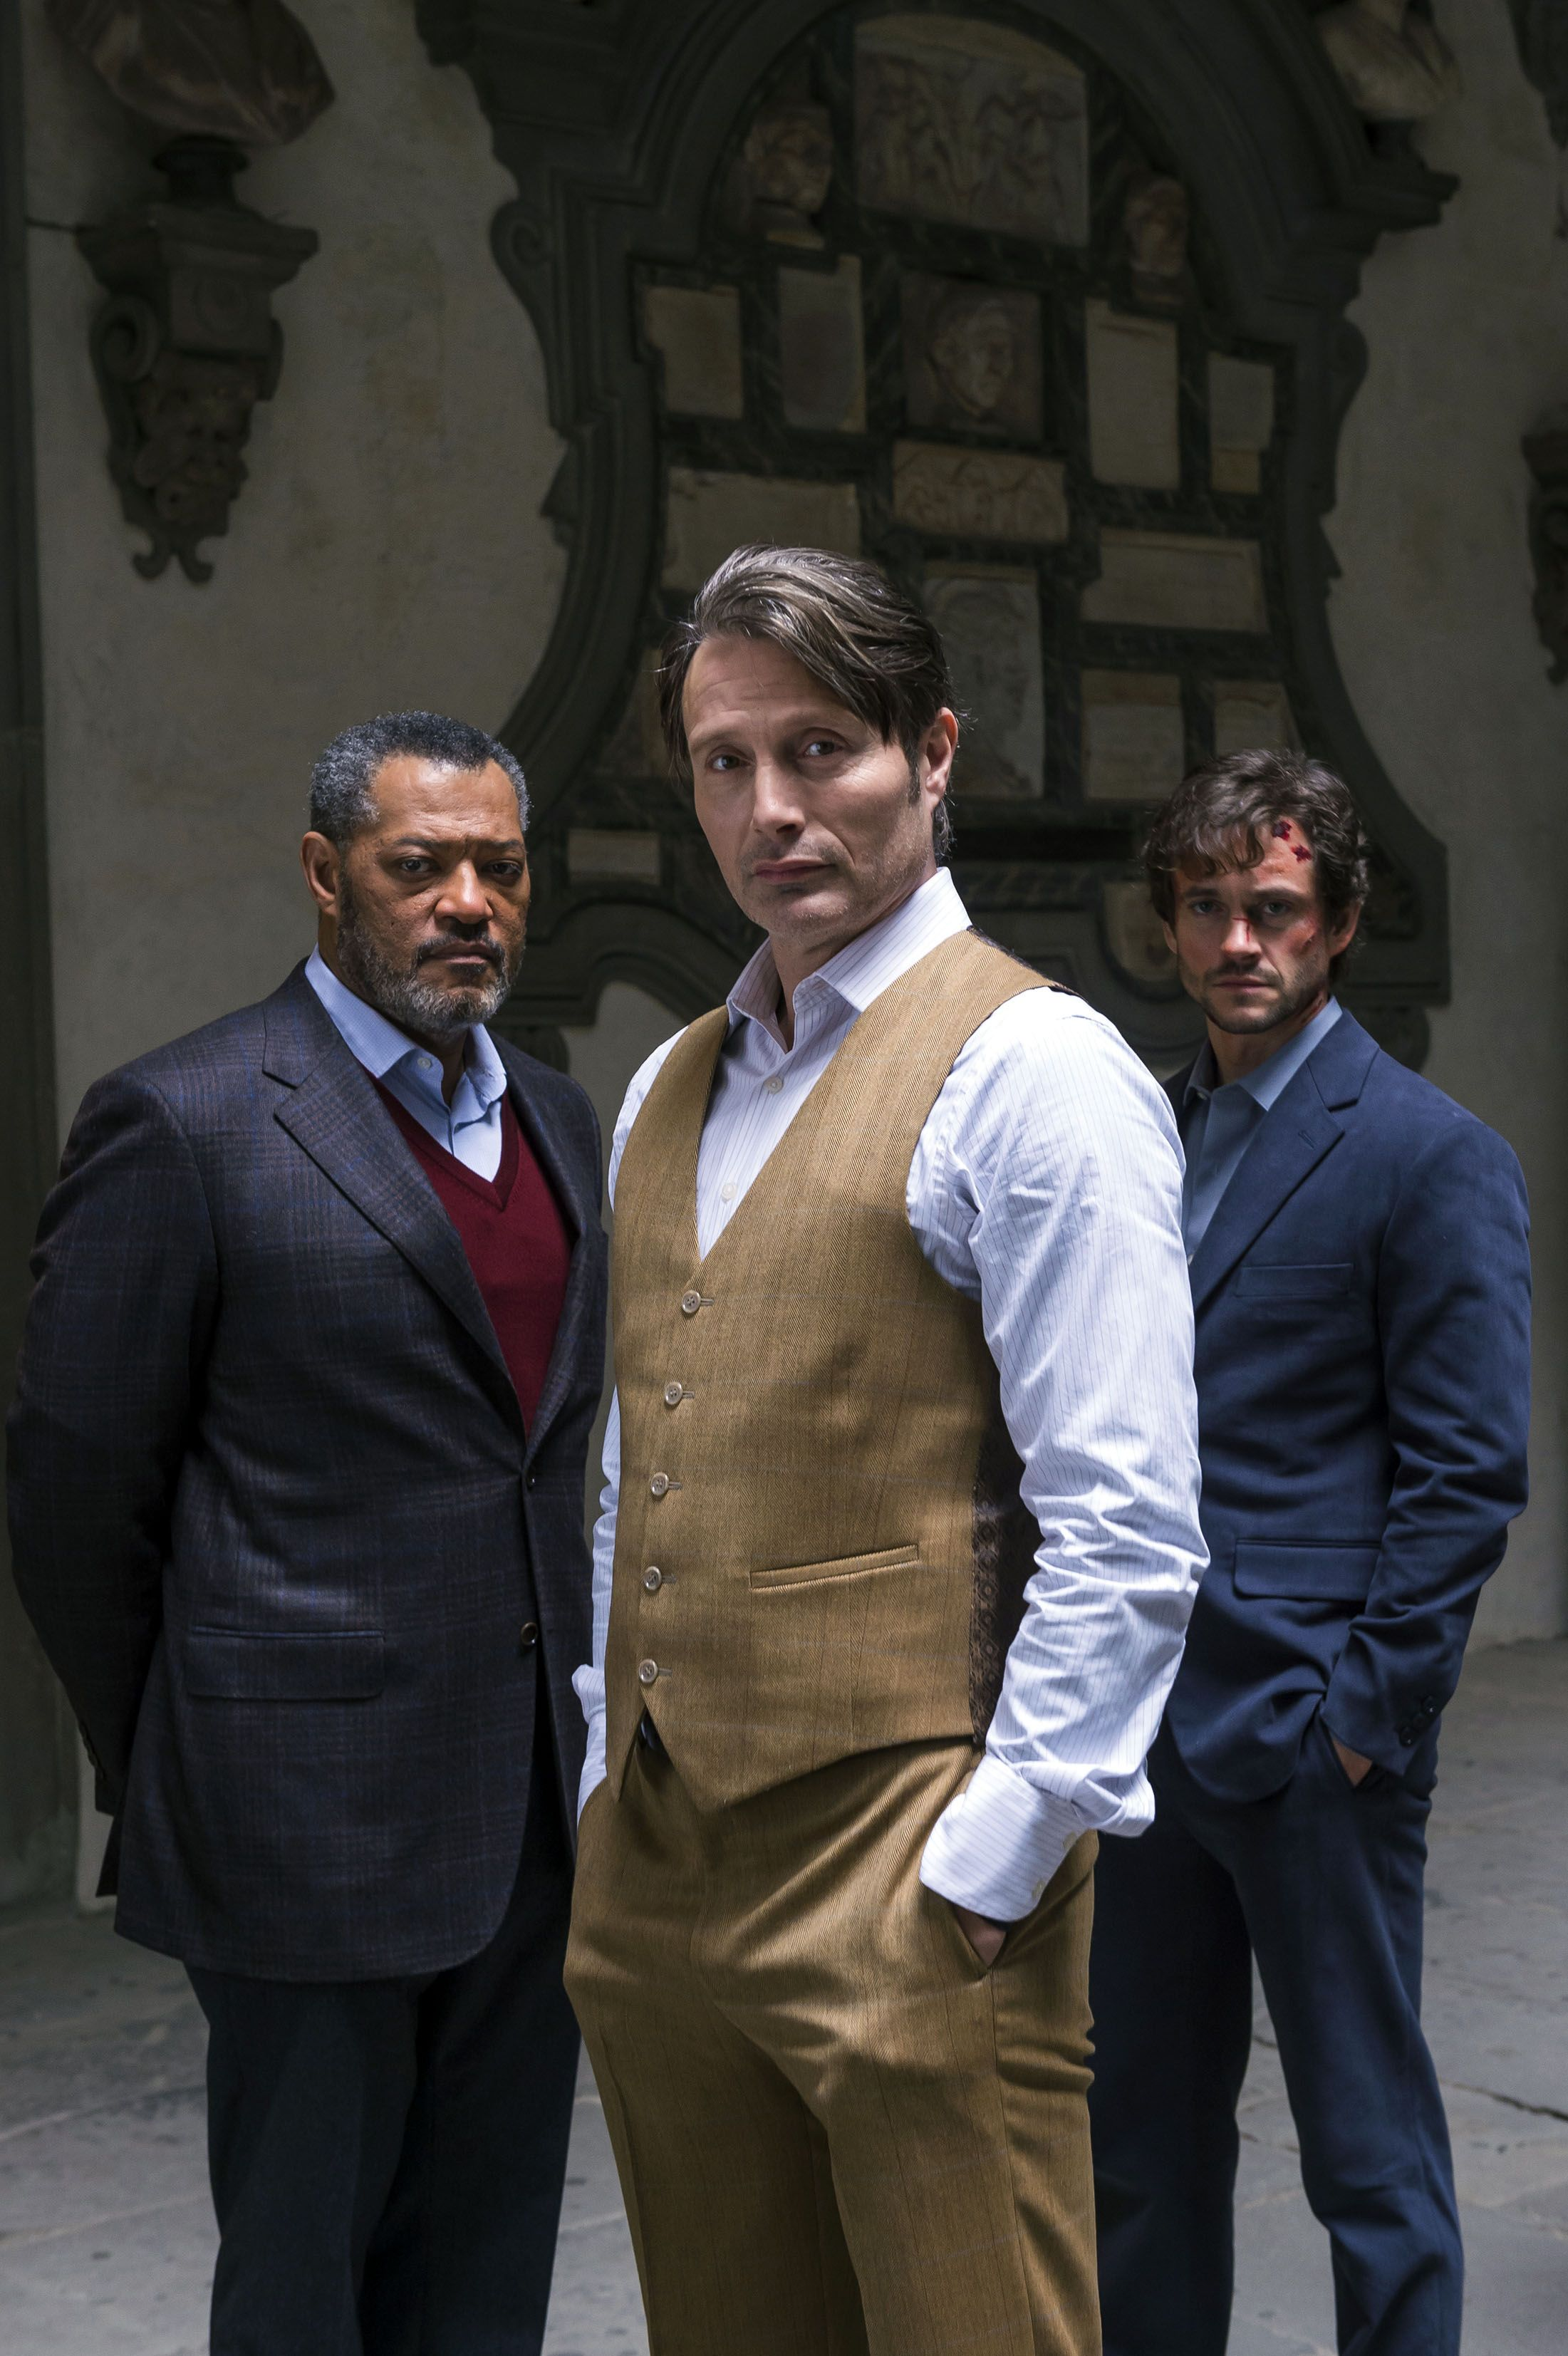 Hannibal – S3 Promotional Image (high quality) | Pazzi, Bellezza